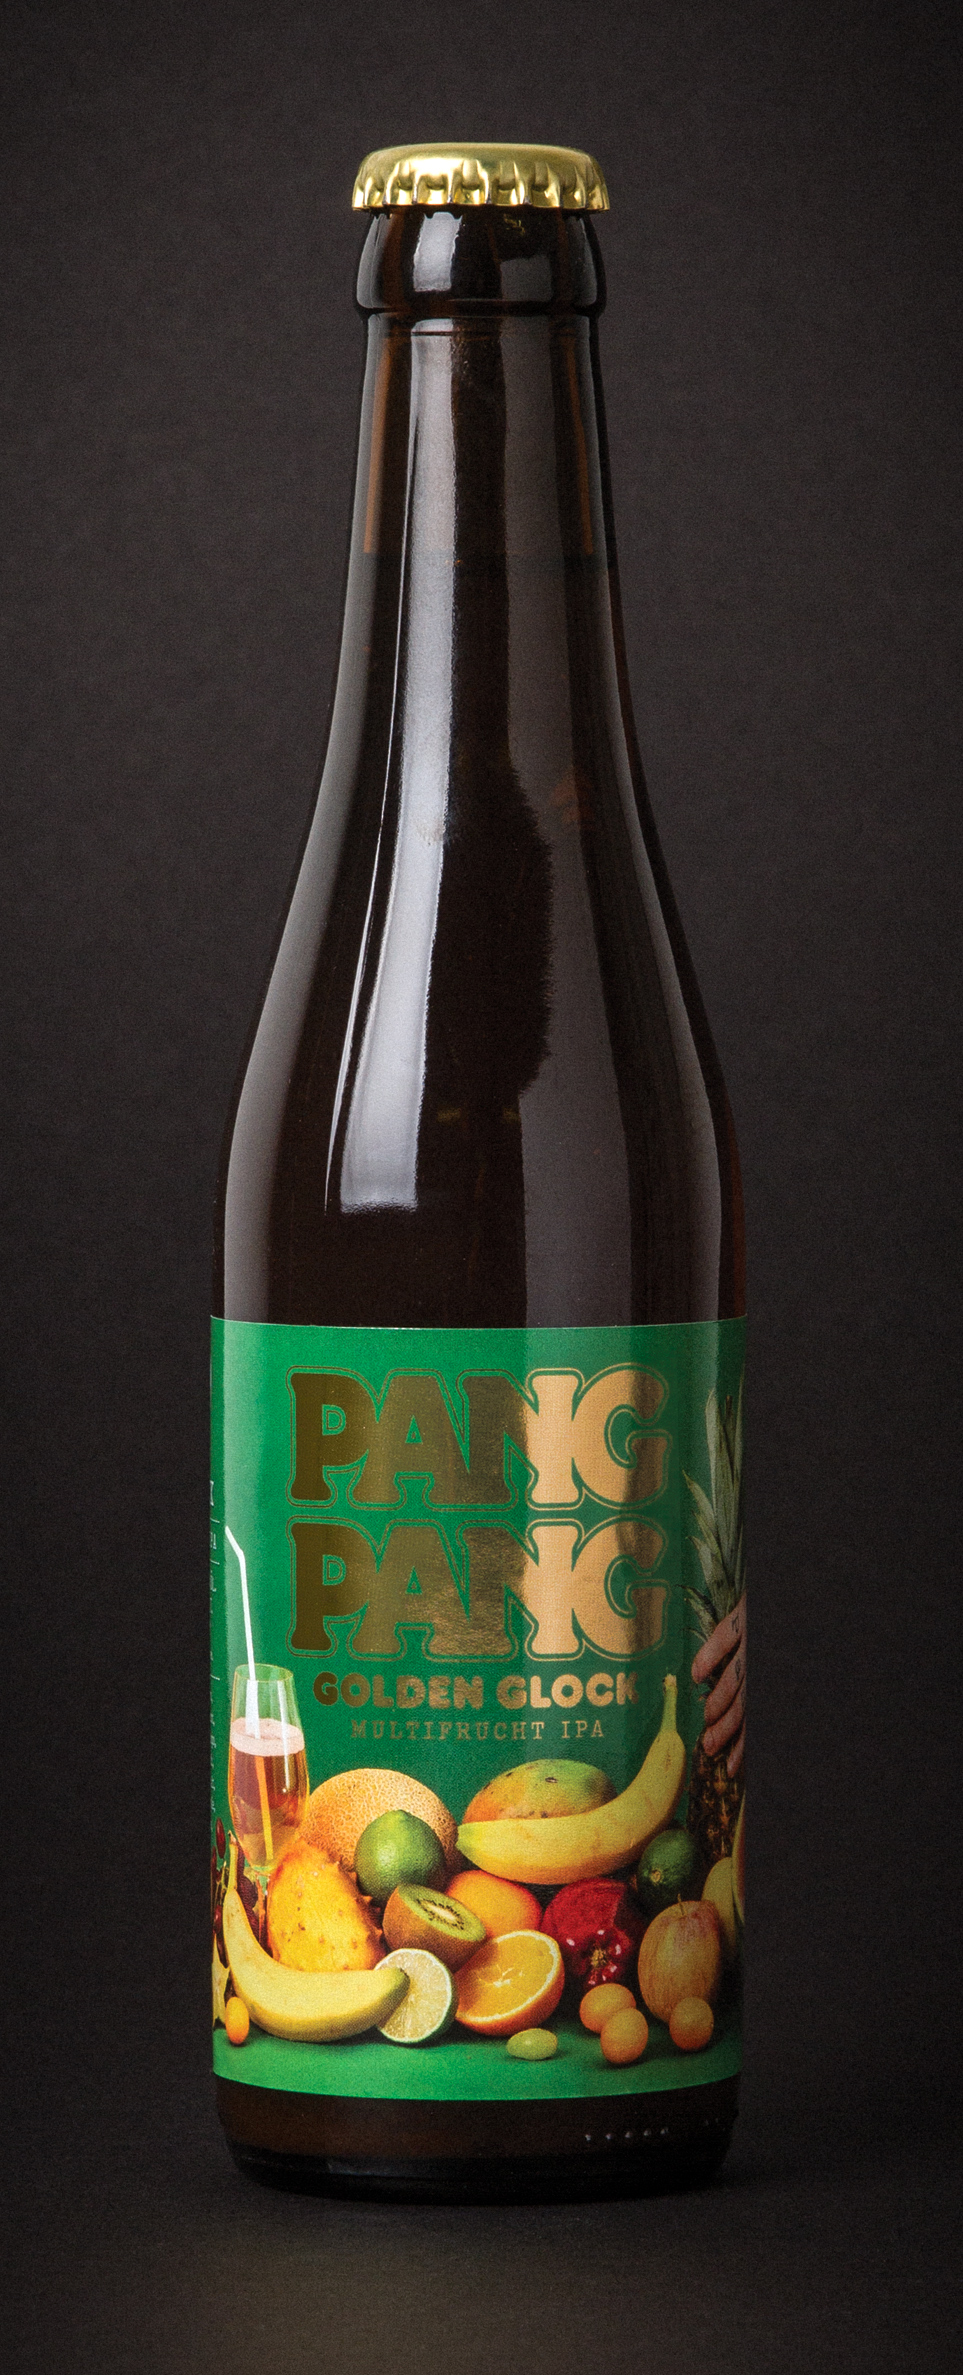 PangPang Golden Glock  Fruit IPA brewed with every fruit you can mention in 5 minutes. 4,5% · 33 centiliter